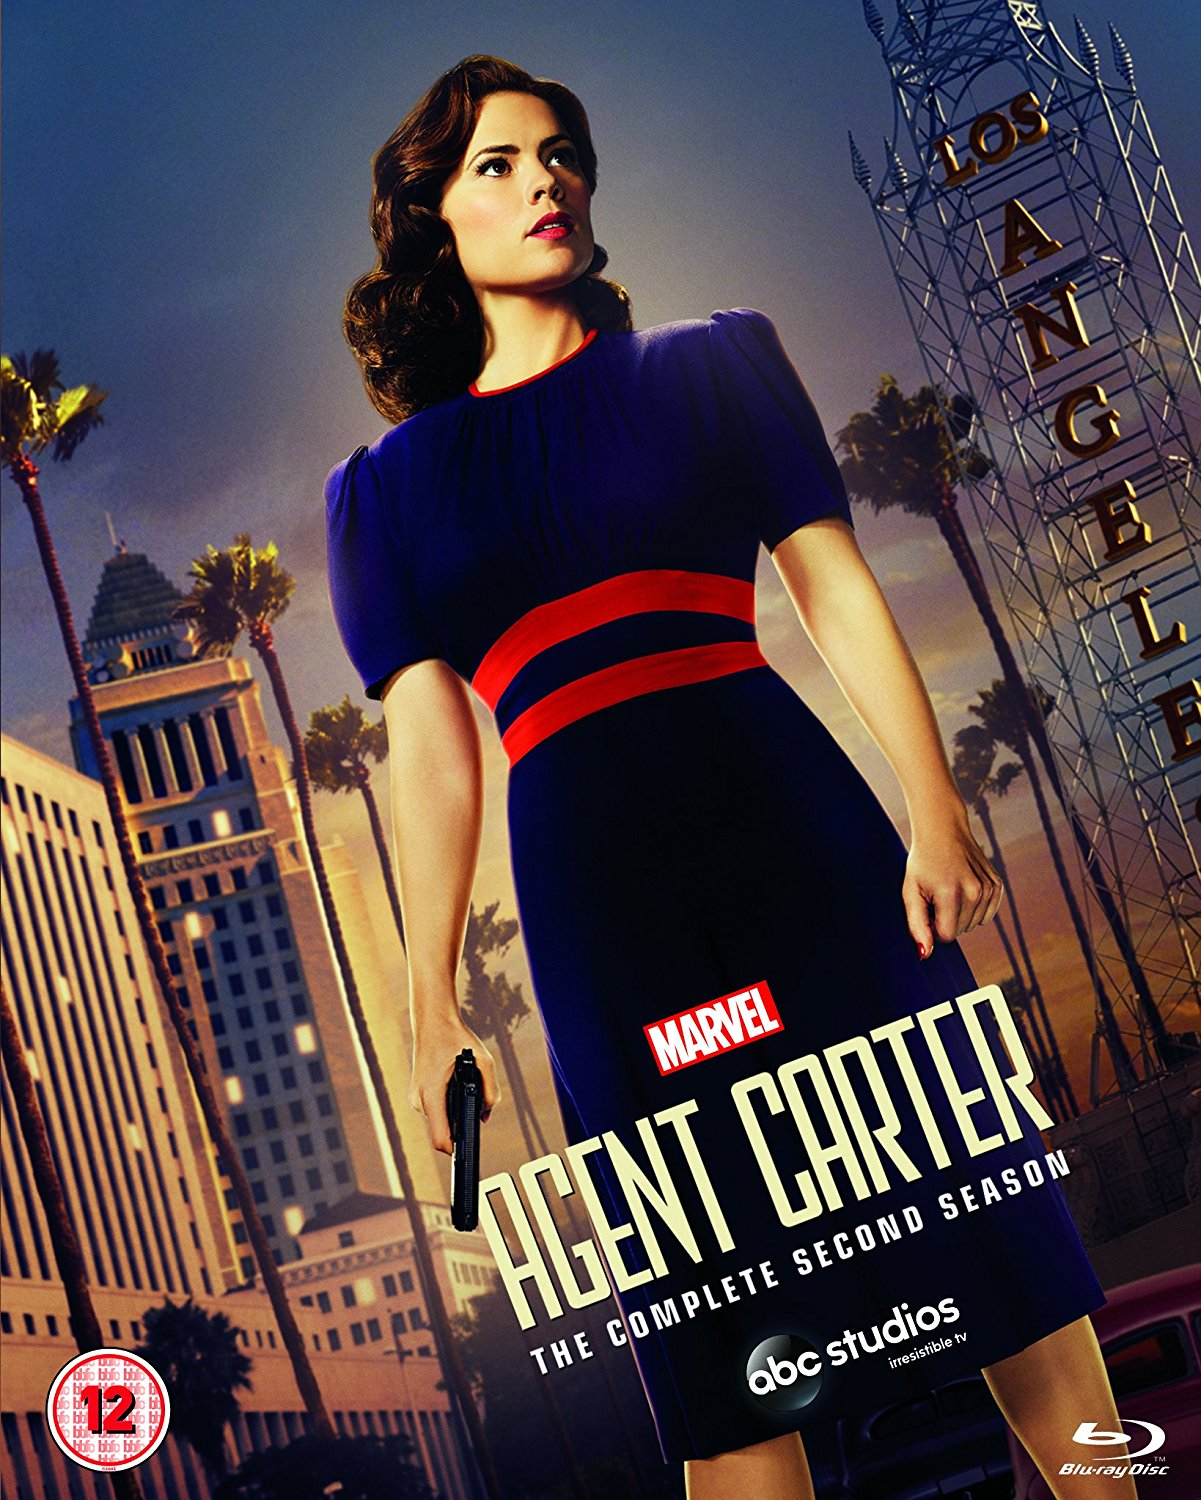 Agent Carter Season 2 Blu-ray review: Peggy's swansong